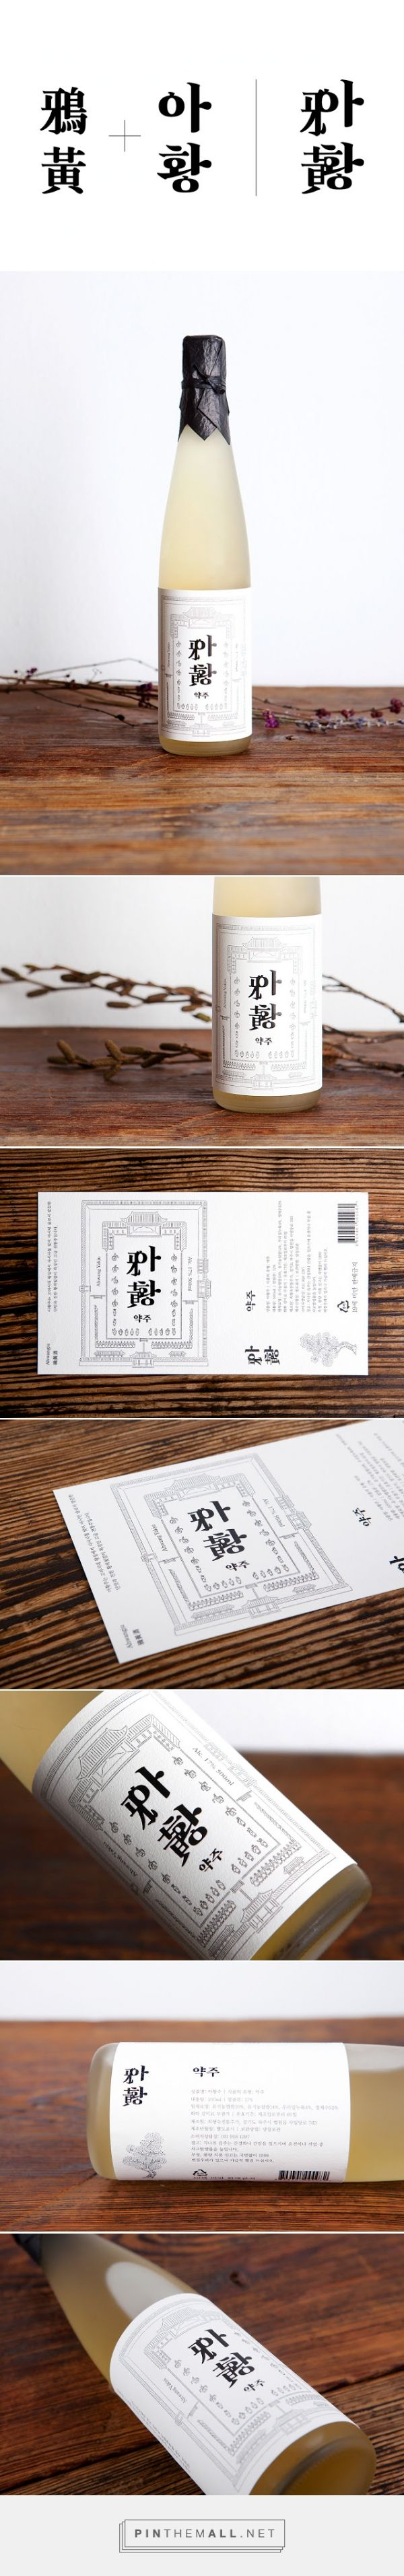 Ahwang-ju rice #wine #packaging by ContentFormContext - http://www.packagingoftheworld.com/2015/02/ahwang-ju.html